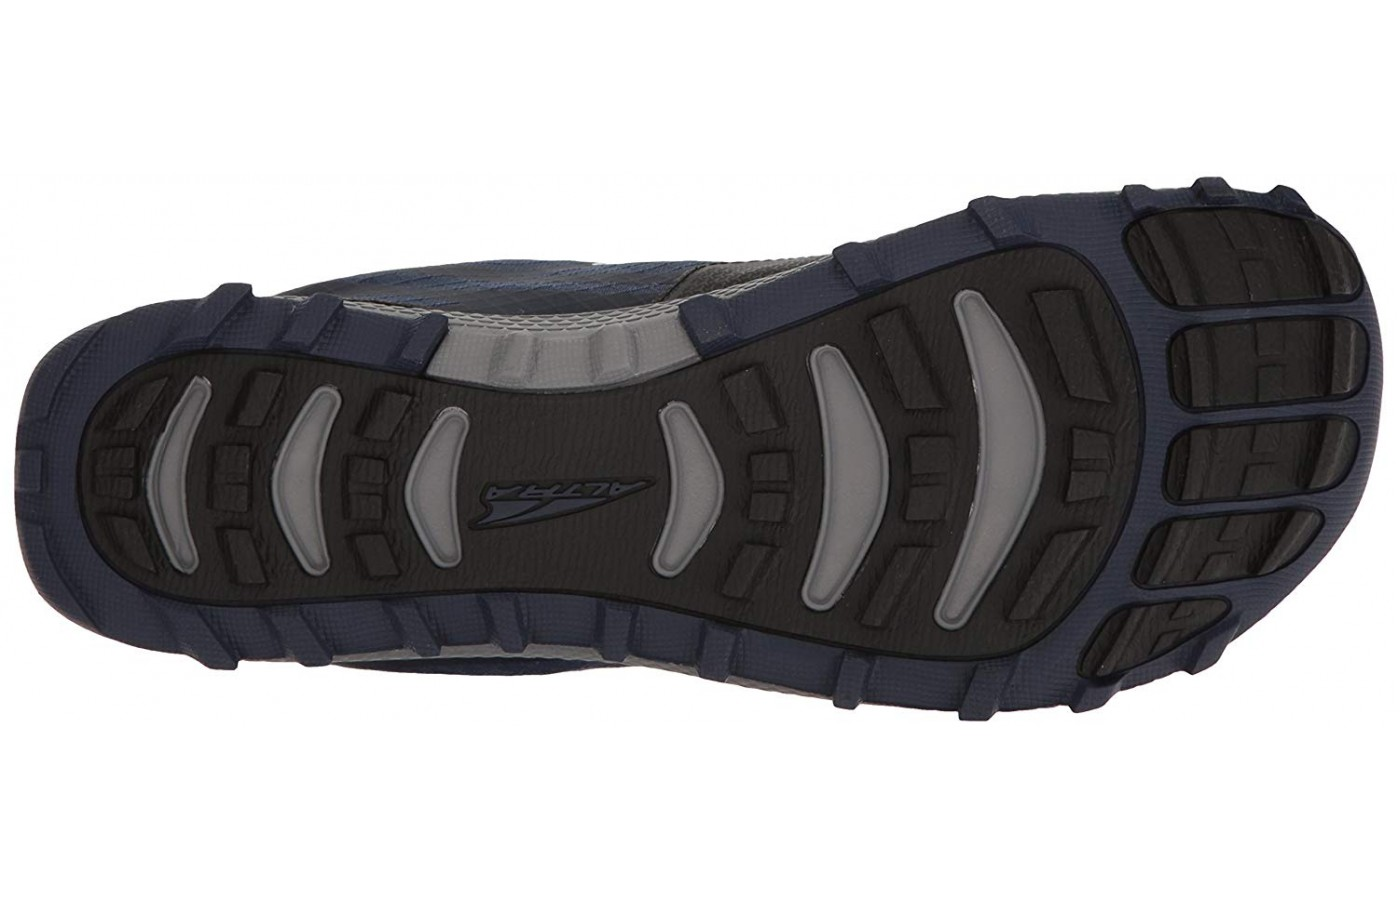 The outsole has Trail Claw technology.